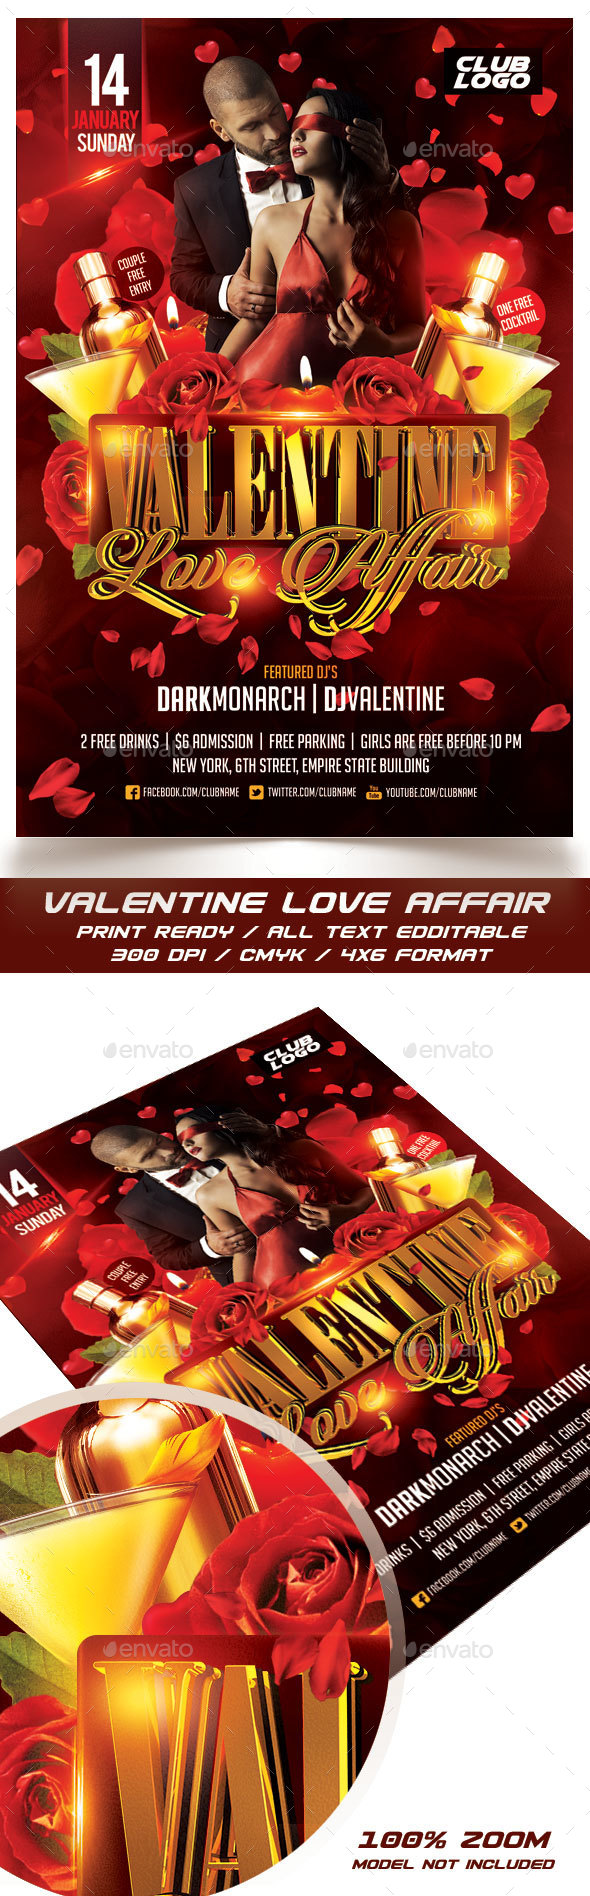 Valentine Love Affair Flyer - Events Flyers